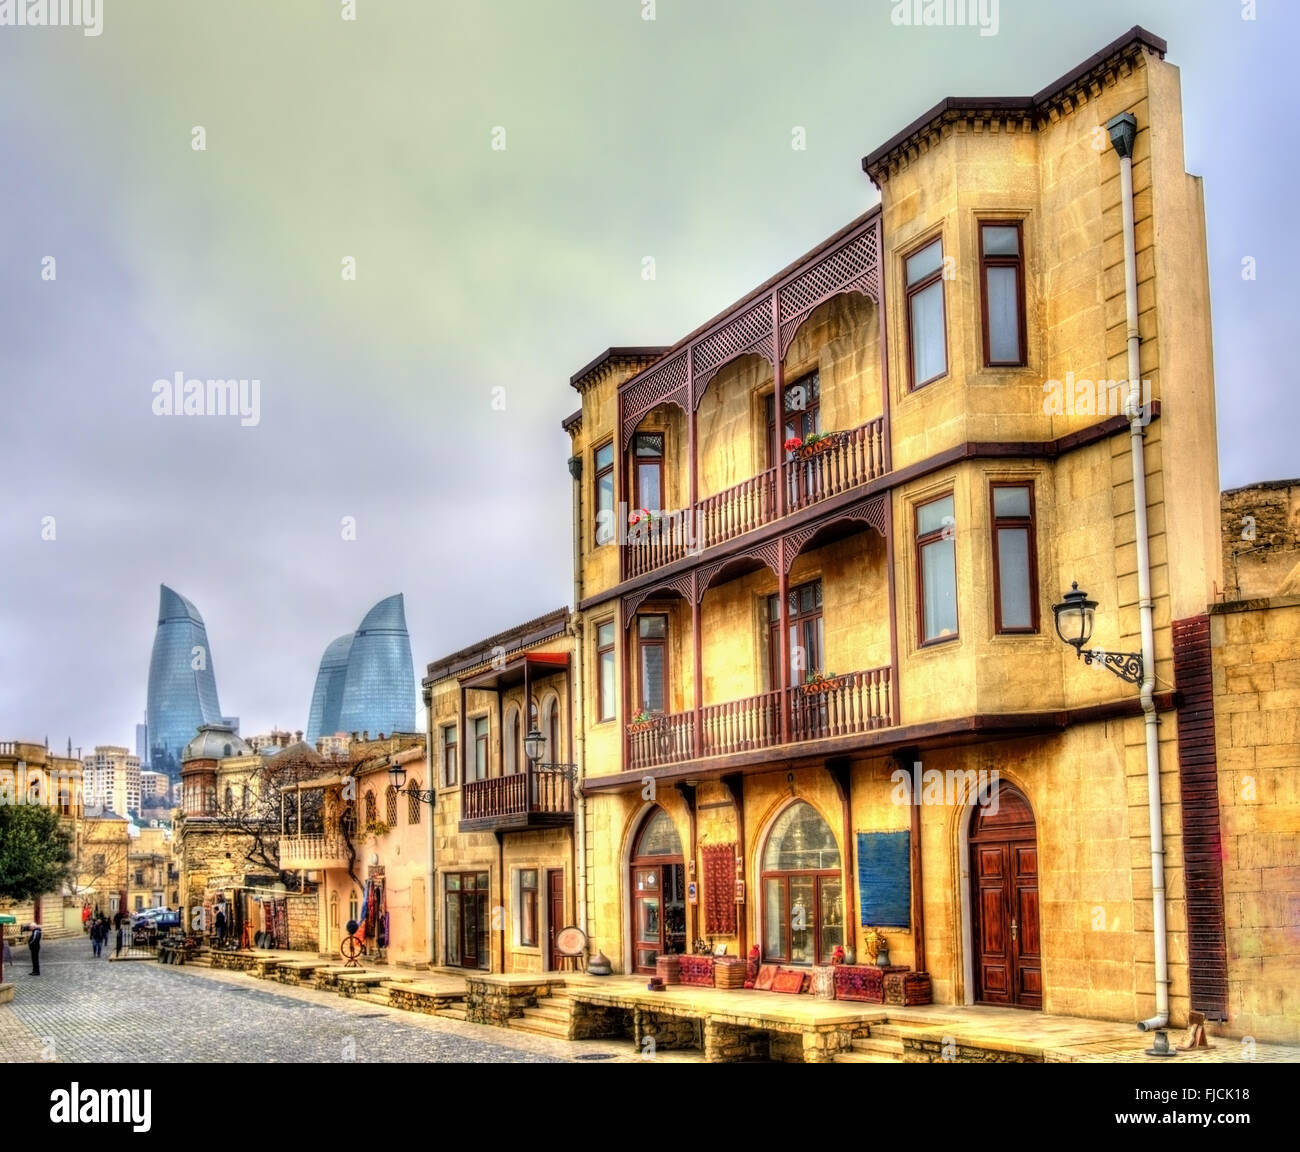 Icheri Sheher, the Old Town of Baku - Stock Image